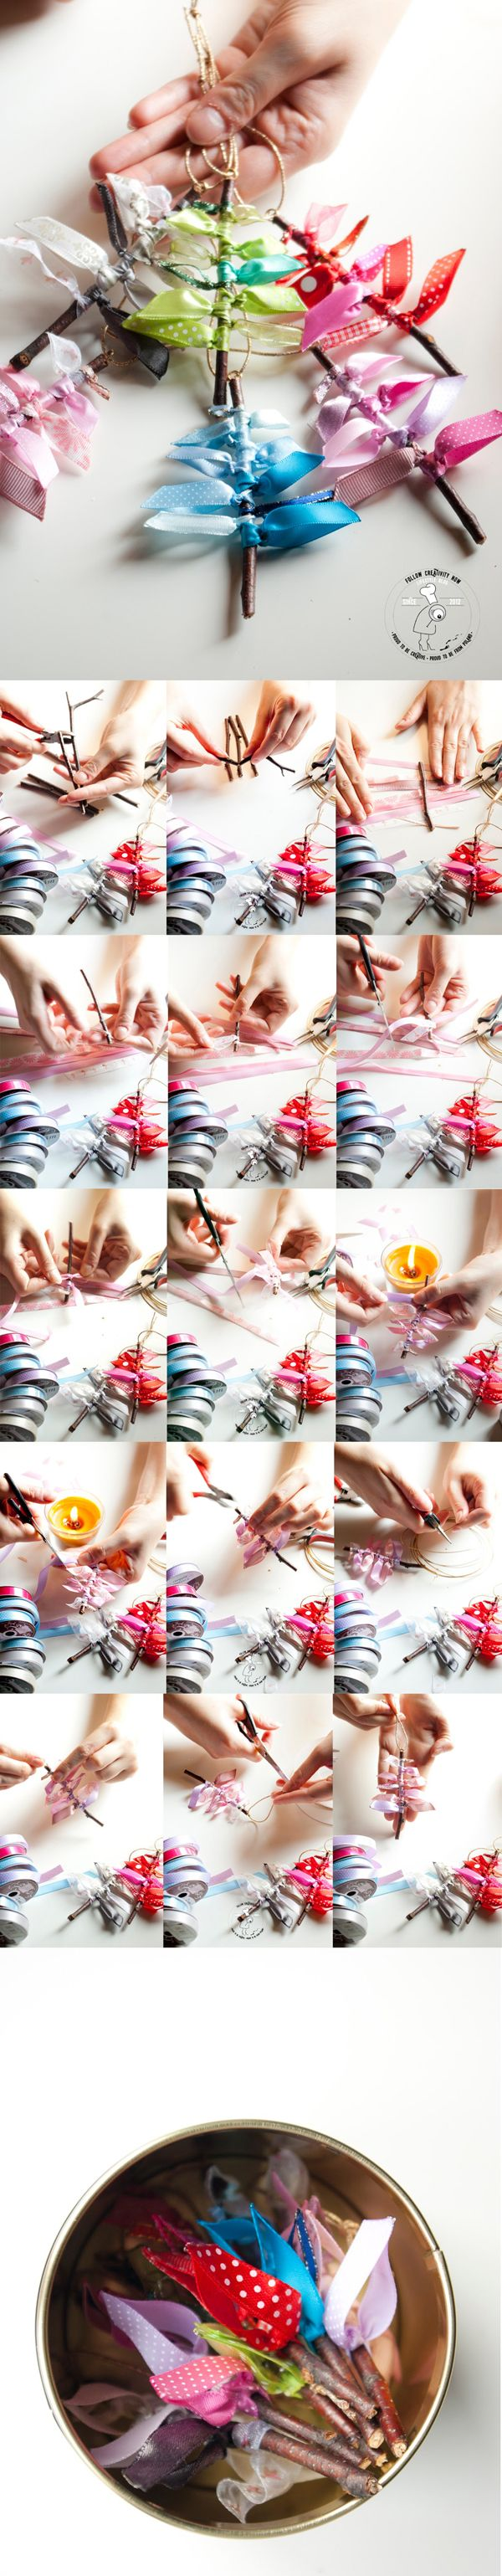 DIY Christmas tree decoration made of ribbons and birch twigs - tutorial - eco Christmas ornaments